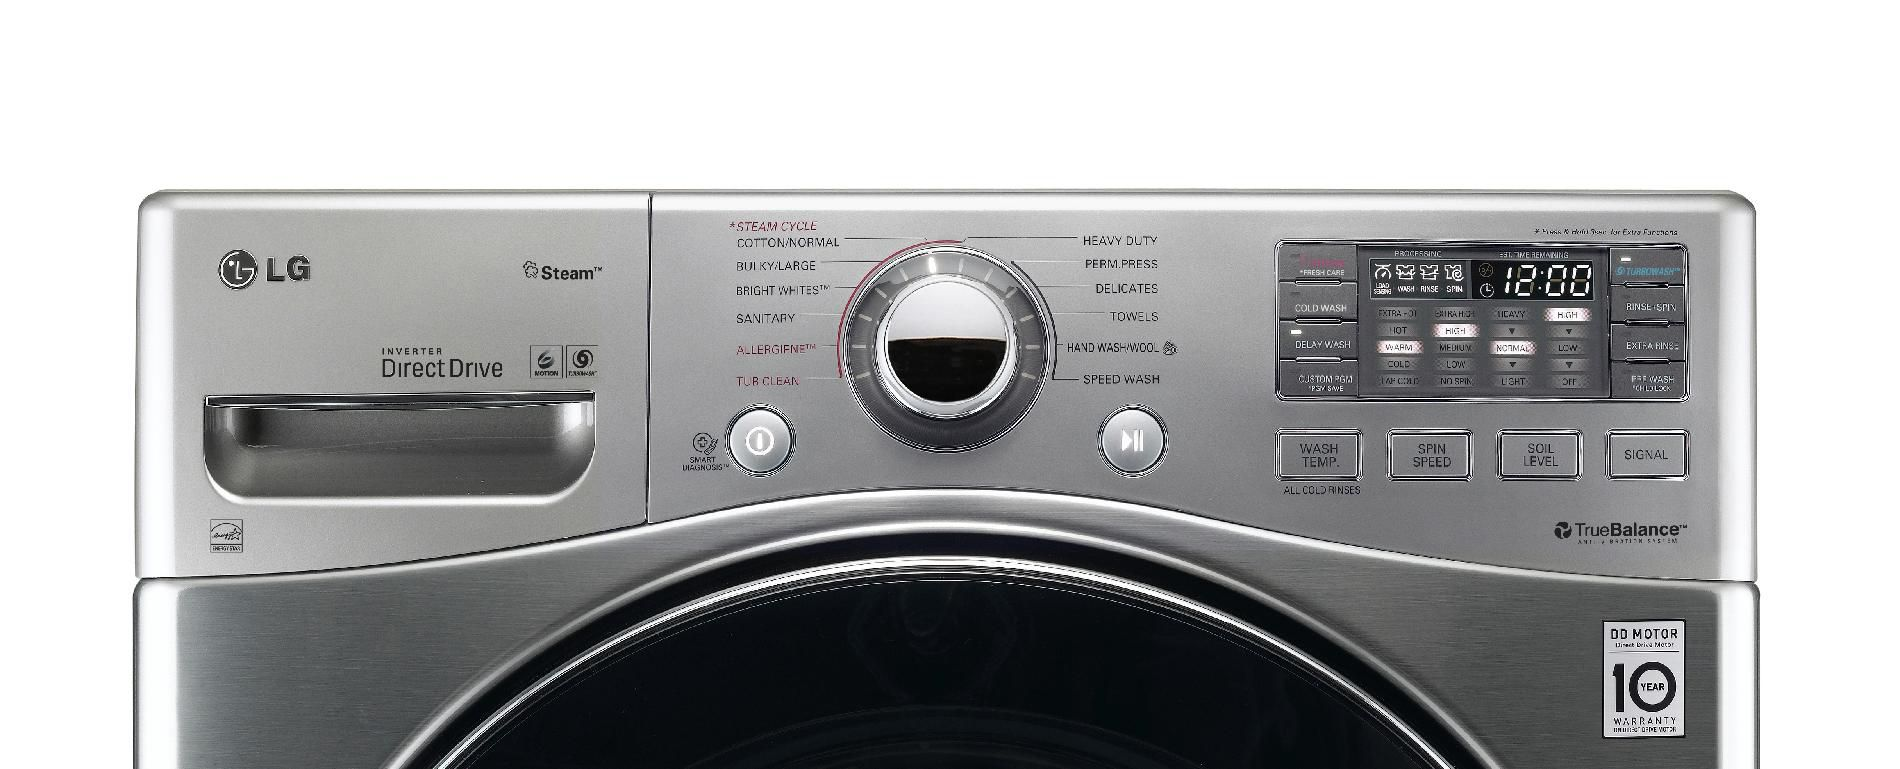 LG 4.0 cu. ft. Ultra-Large-Capacity Steam Front-Load Washer - Graphite Steel